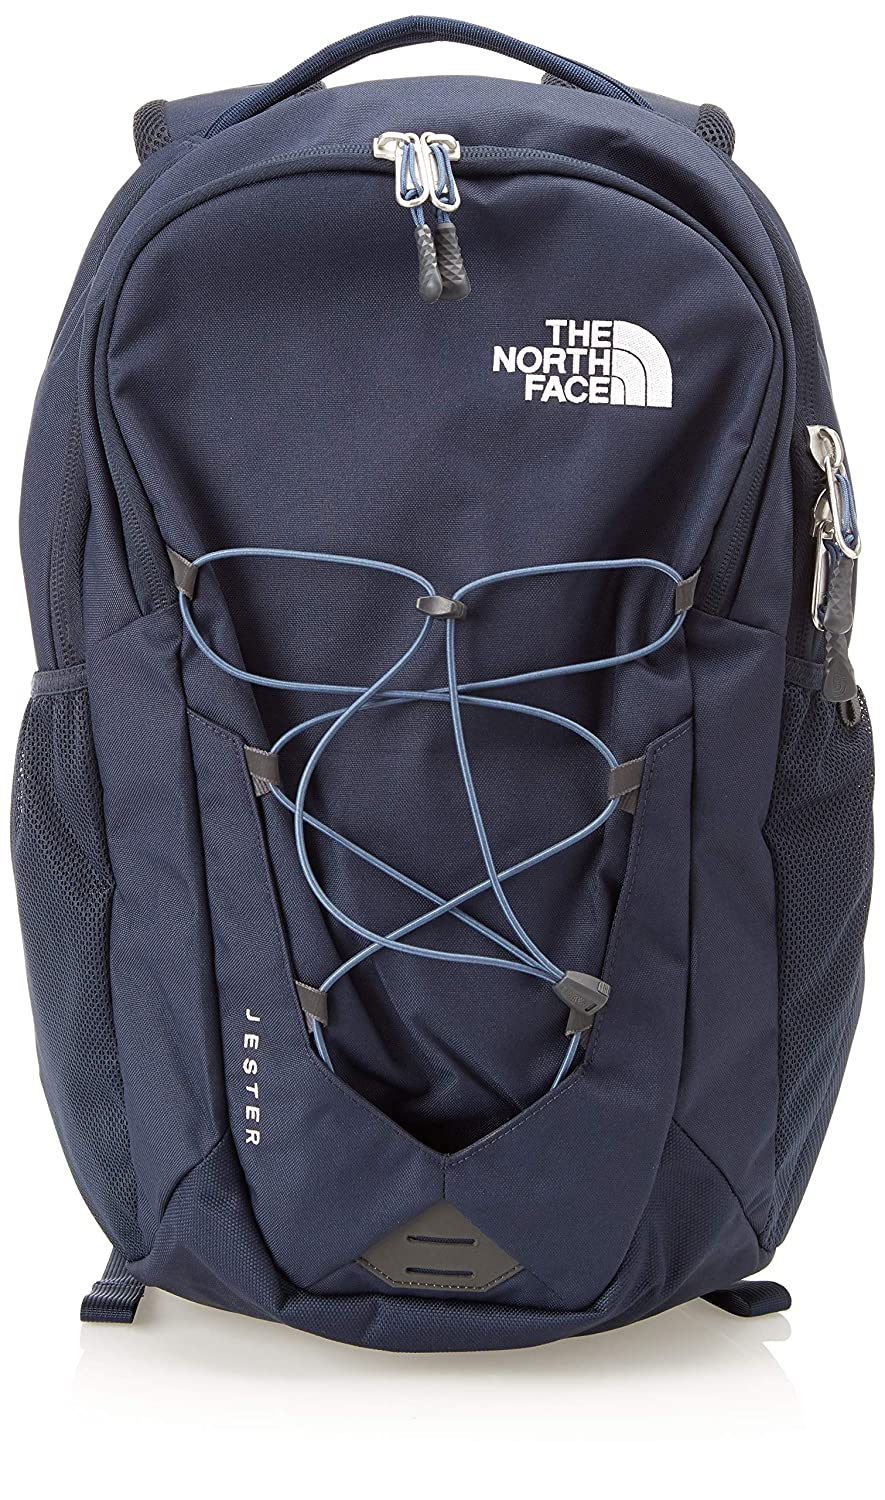 THE NORTH FACE Unisex s Jester Backpack 4fd887f369a7